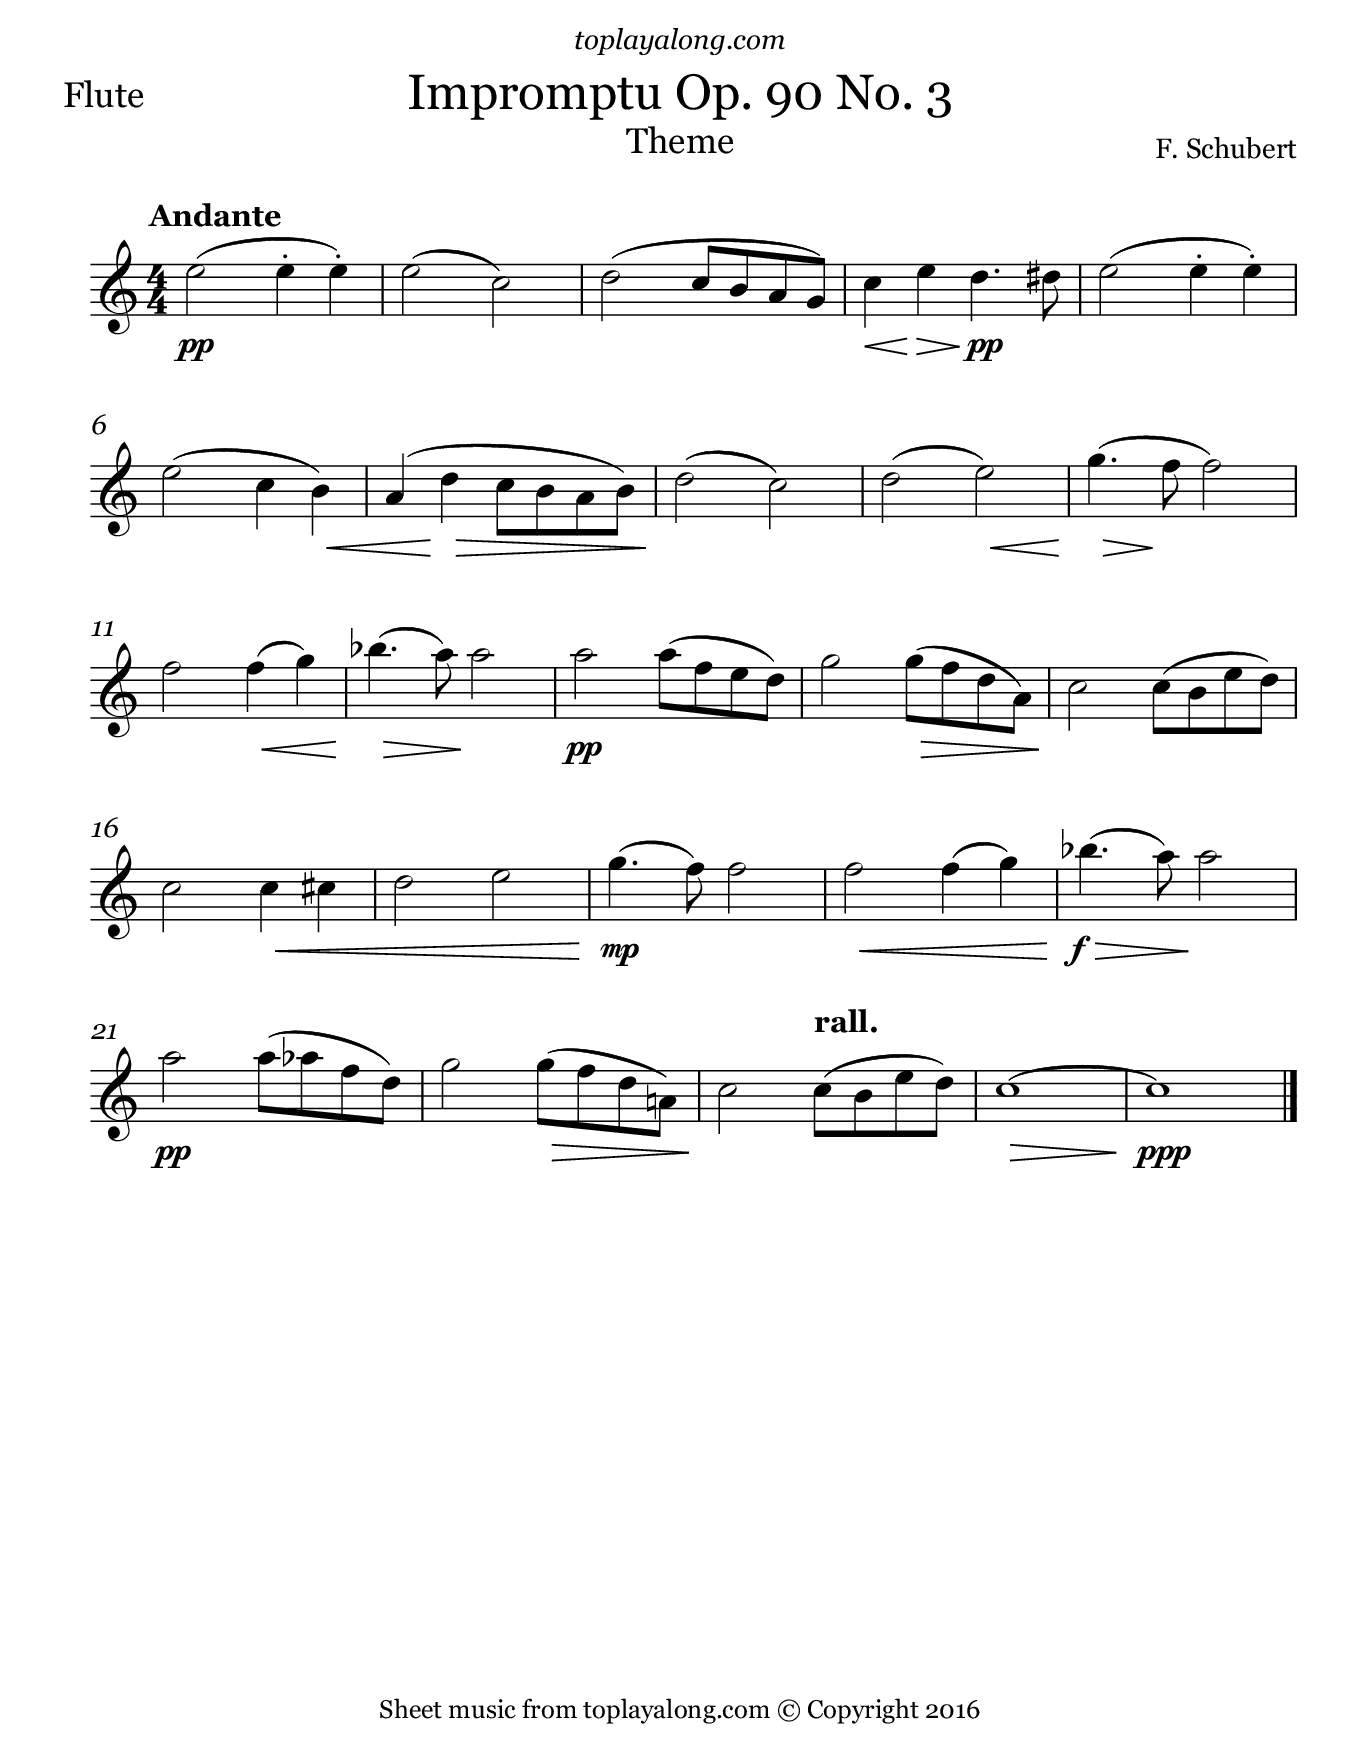 Impromptu Op. 90 No. 3 (Theme) by Schubert. Sheet music for Flute, page 1.